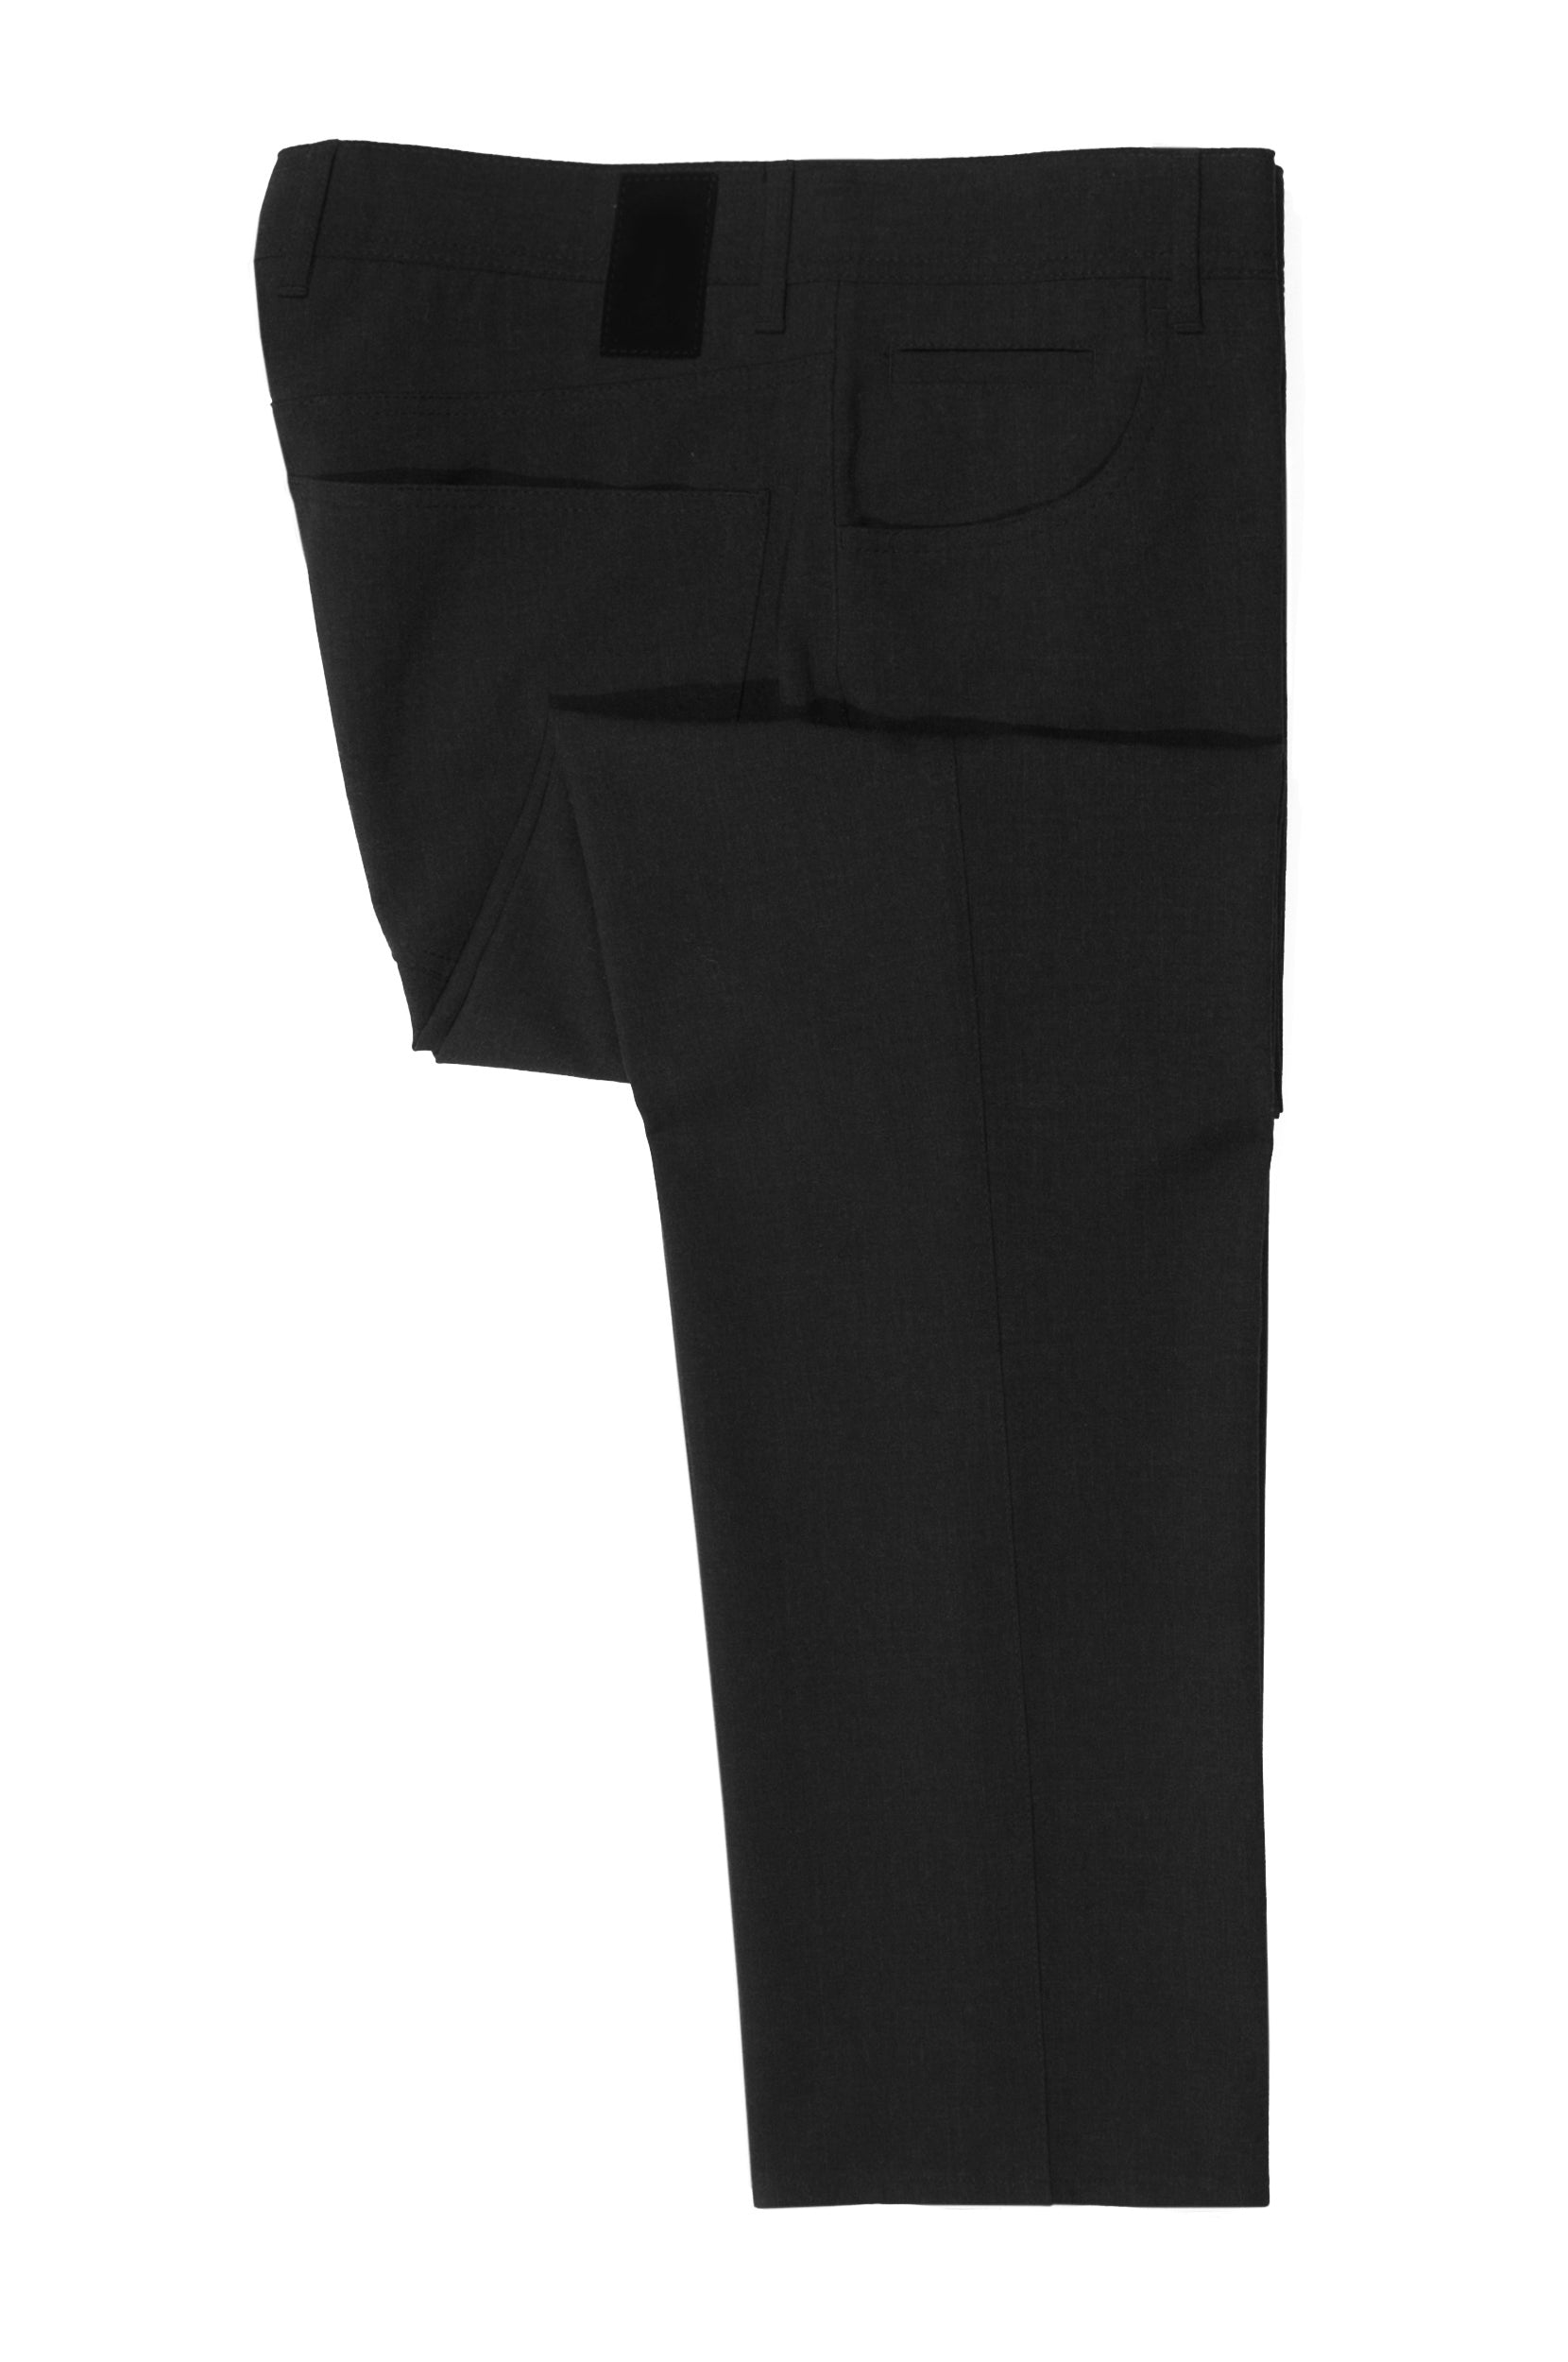 Alberto Charcoal Grey Stone Modern Fit Ceramica Pants for Luxmrkt.com Menswear Consignment Edmonton